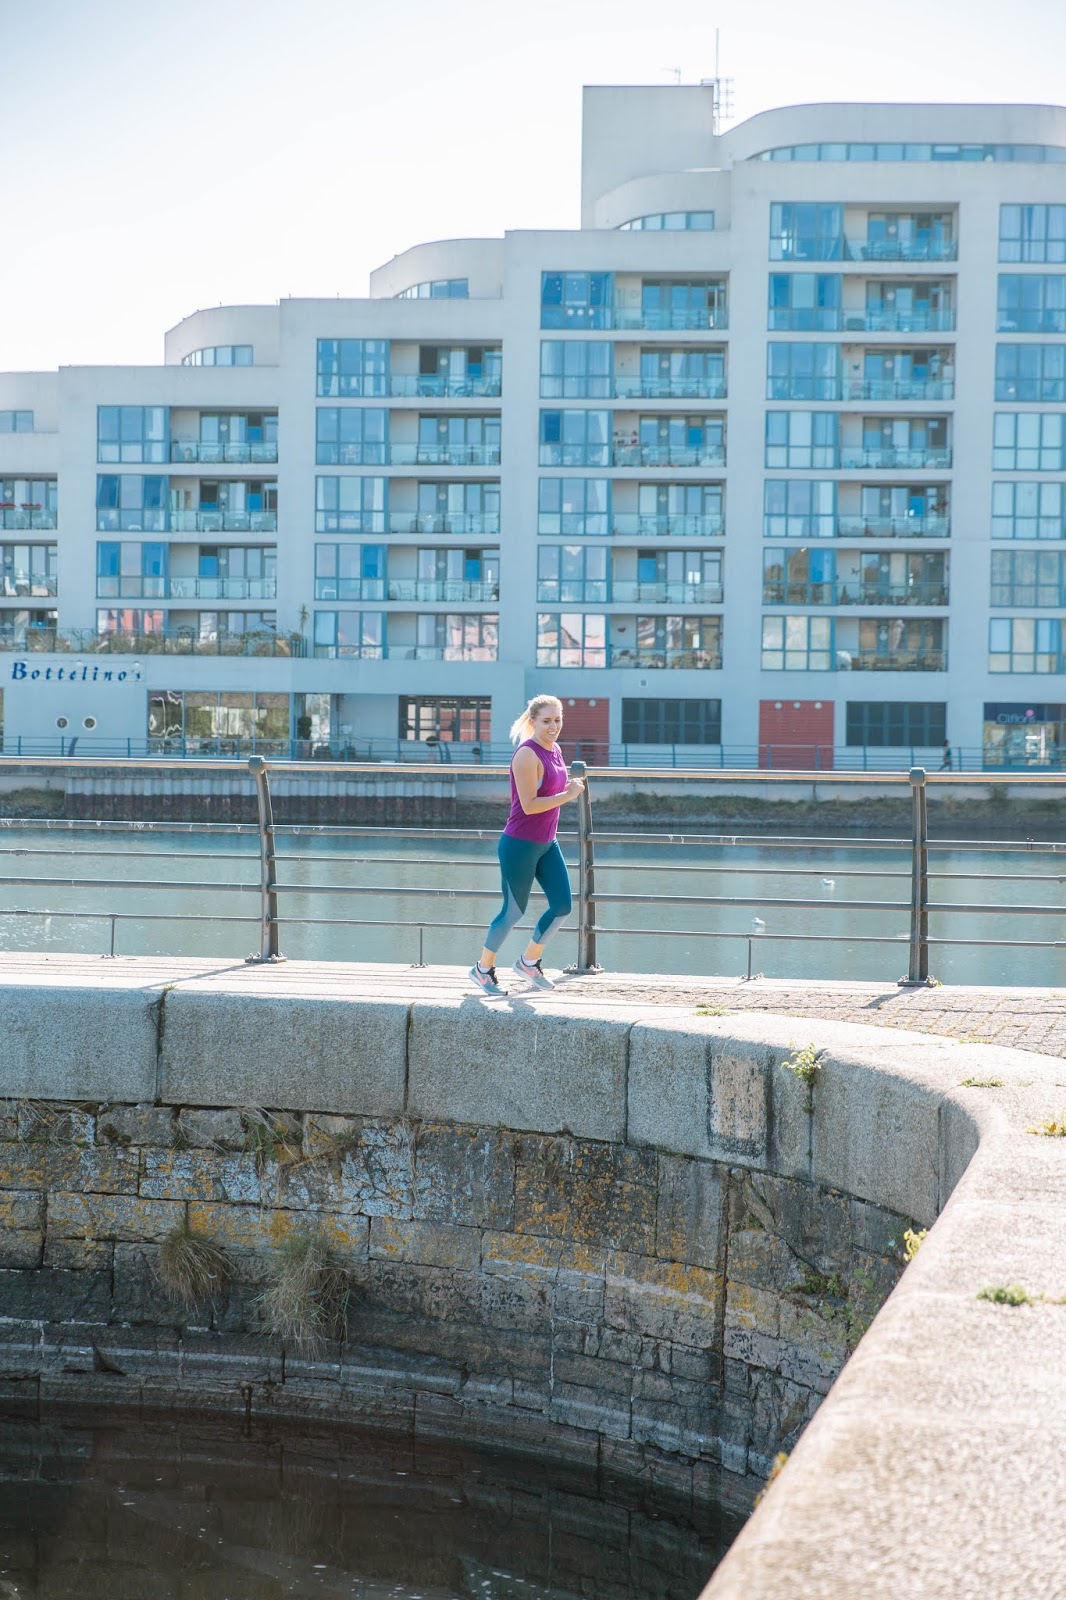 Fitness | The London Marathon Journey - Part 1 - Rachel Emily running in Portishead Marina